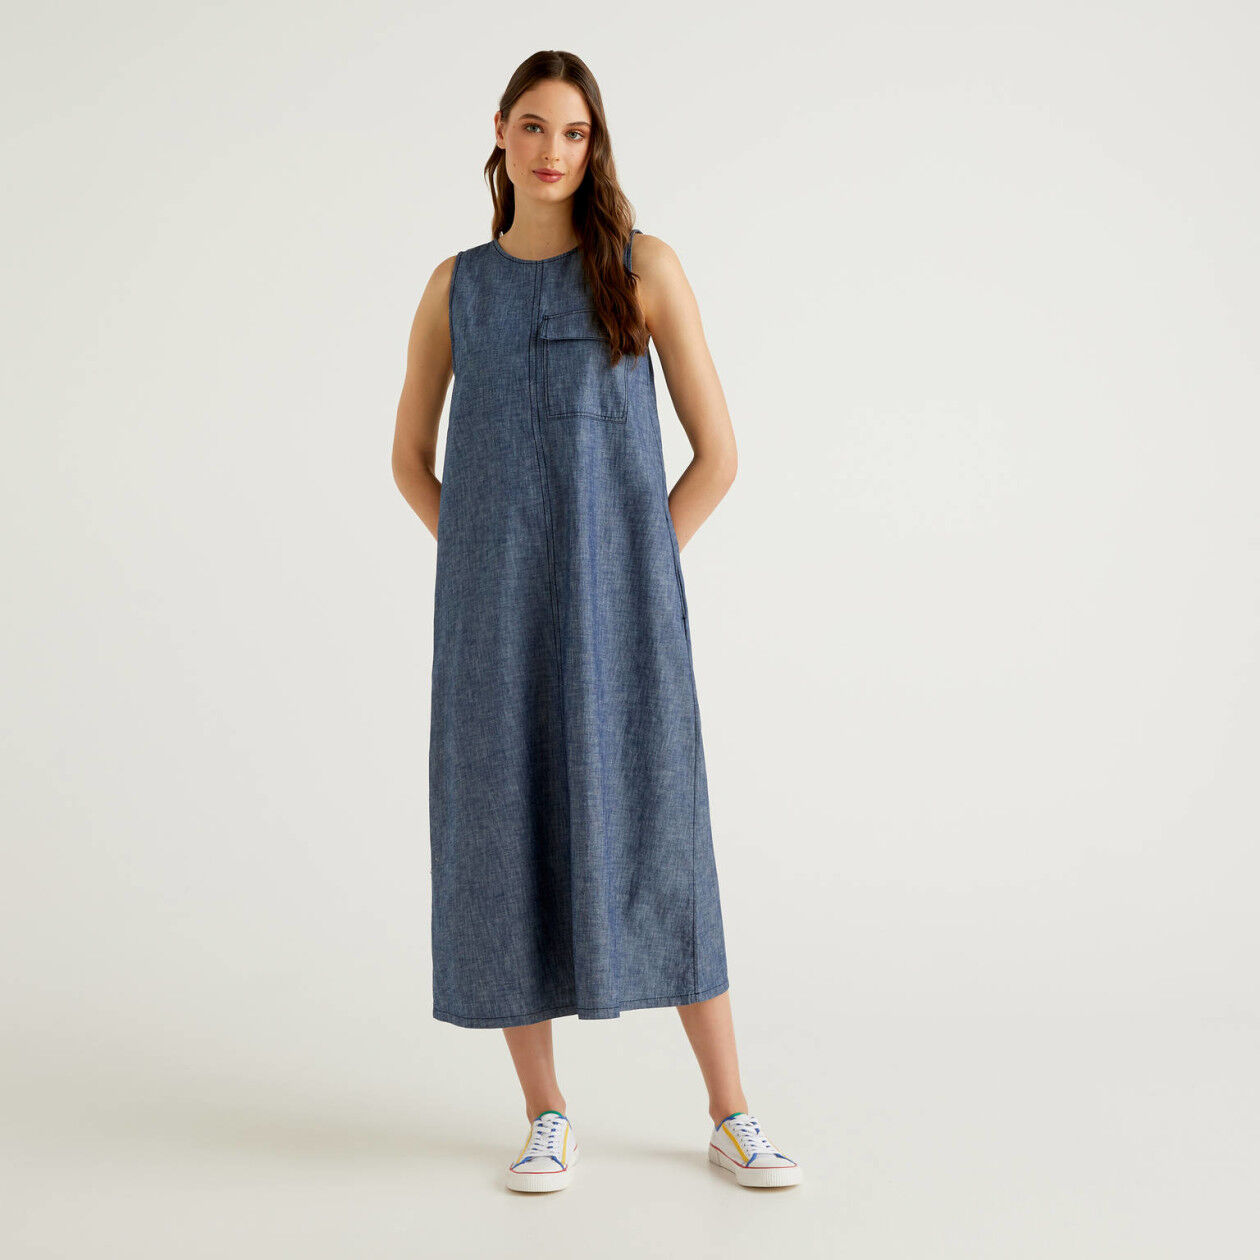 Maxi sleeveless denim look dress